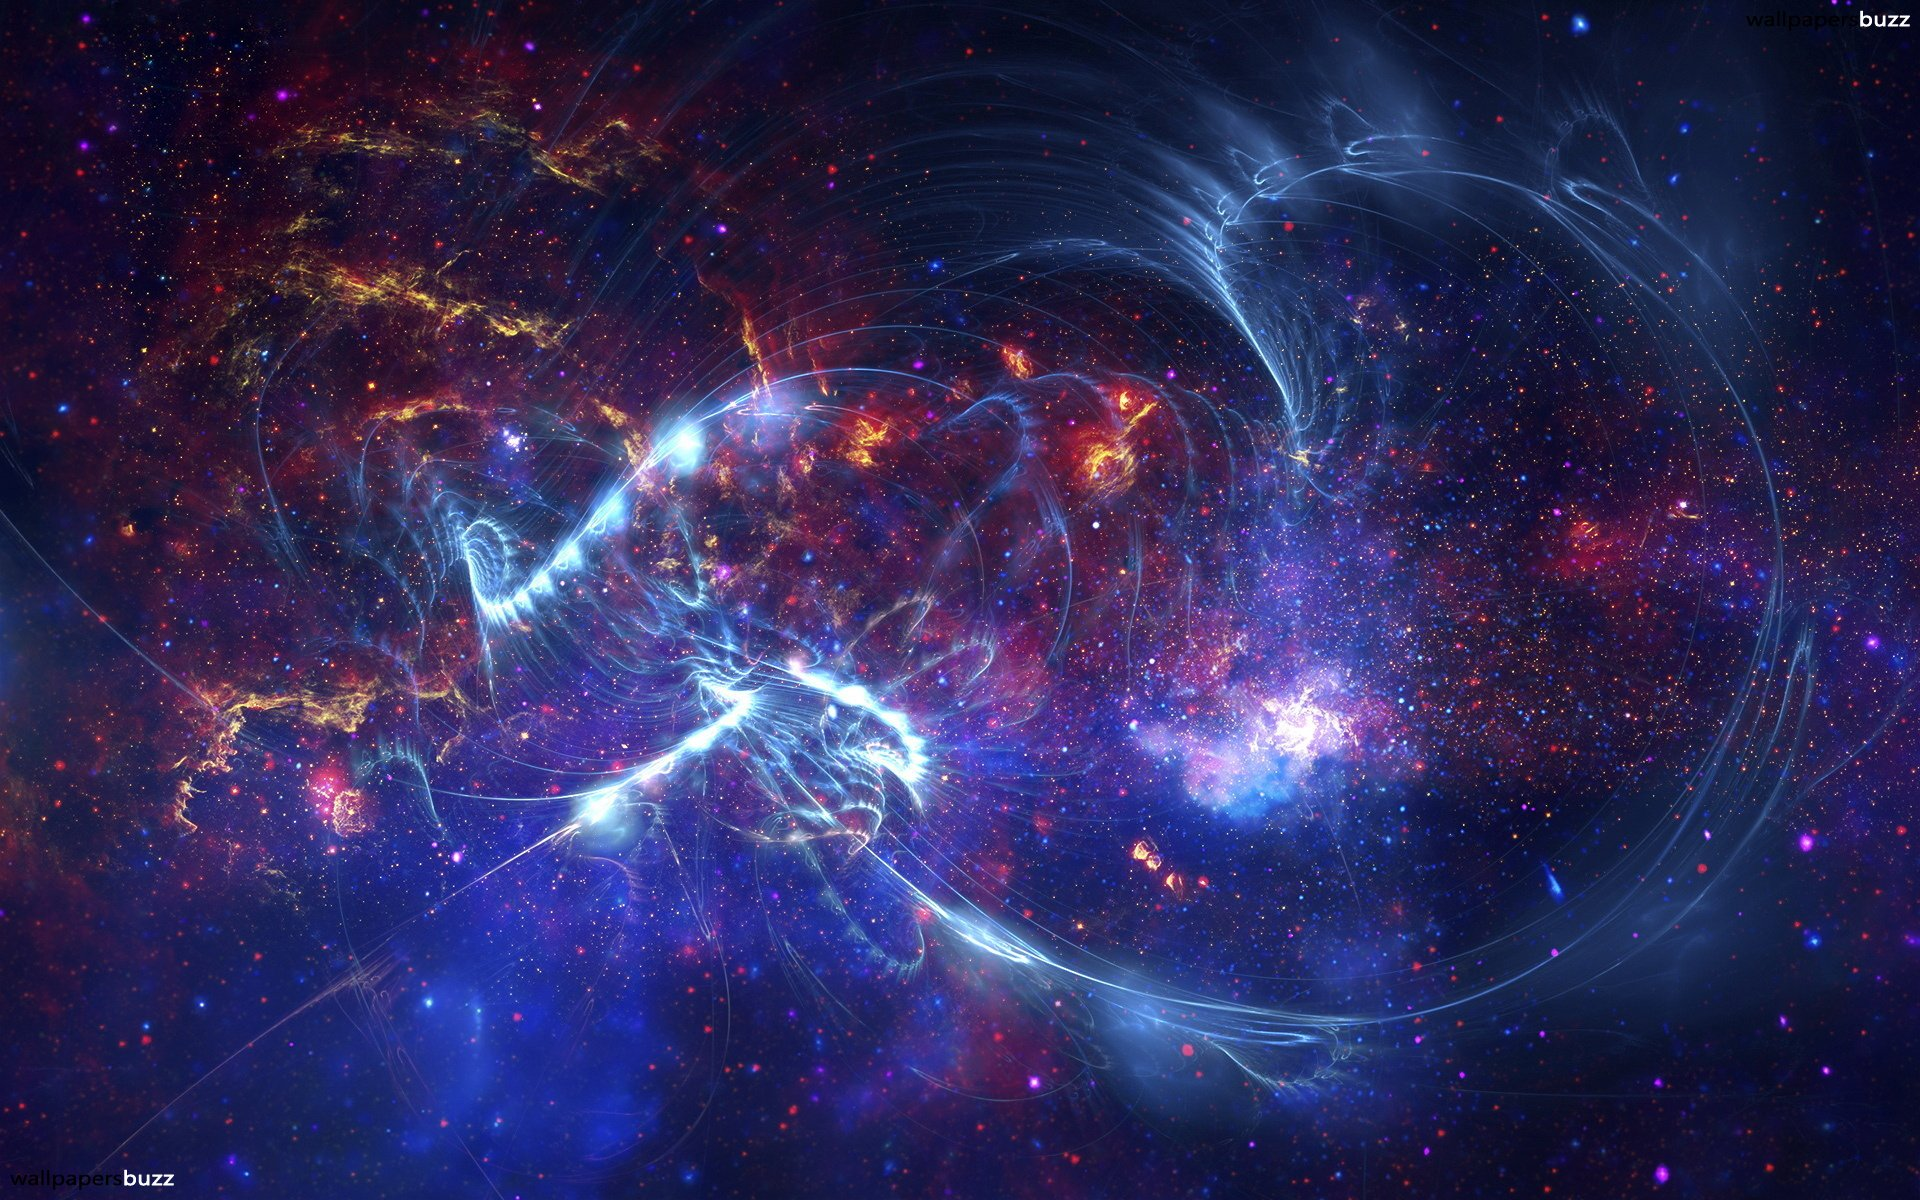 Galaxy HD wallpaper | 1920x1200 | #44007